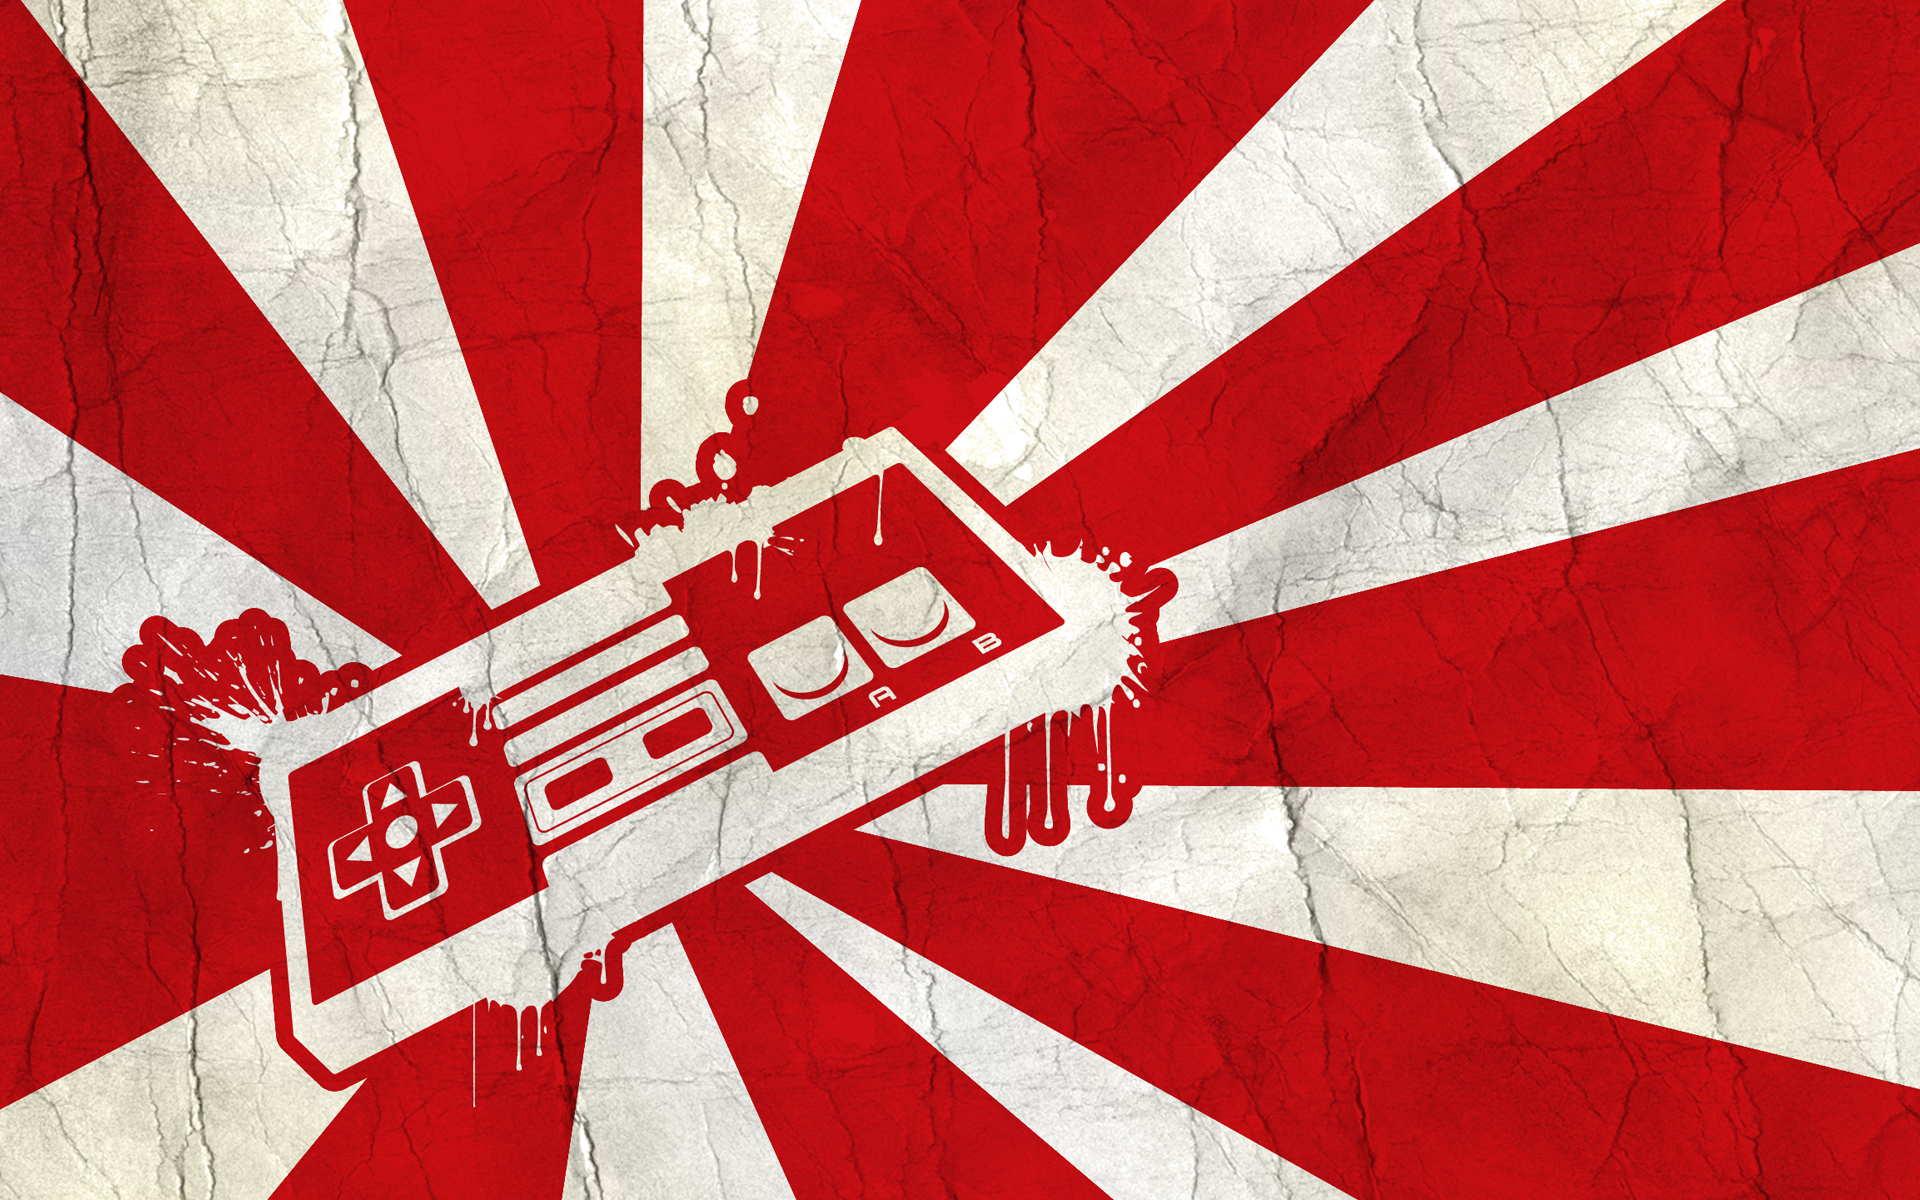 Nintendo Entertainment System images widescreen Wallpaper 1920x1200